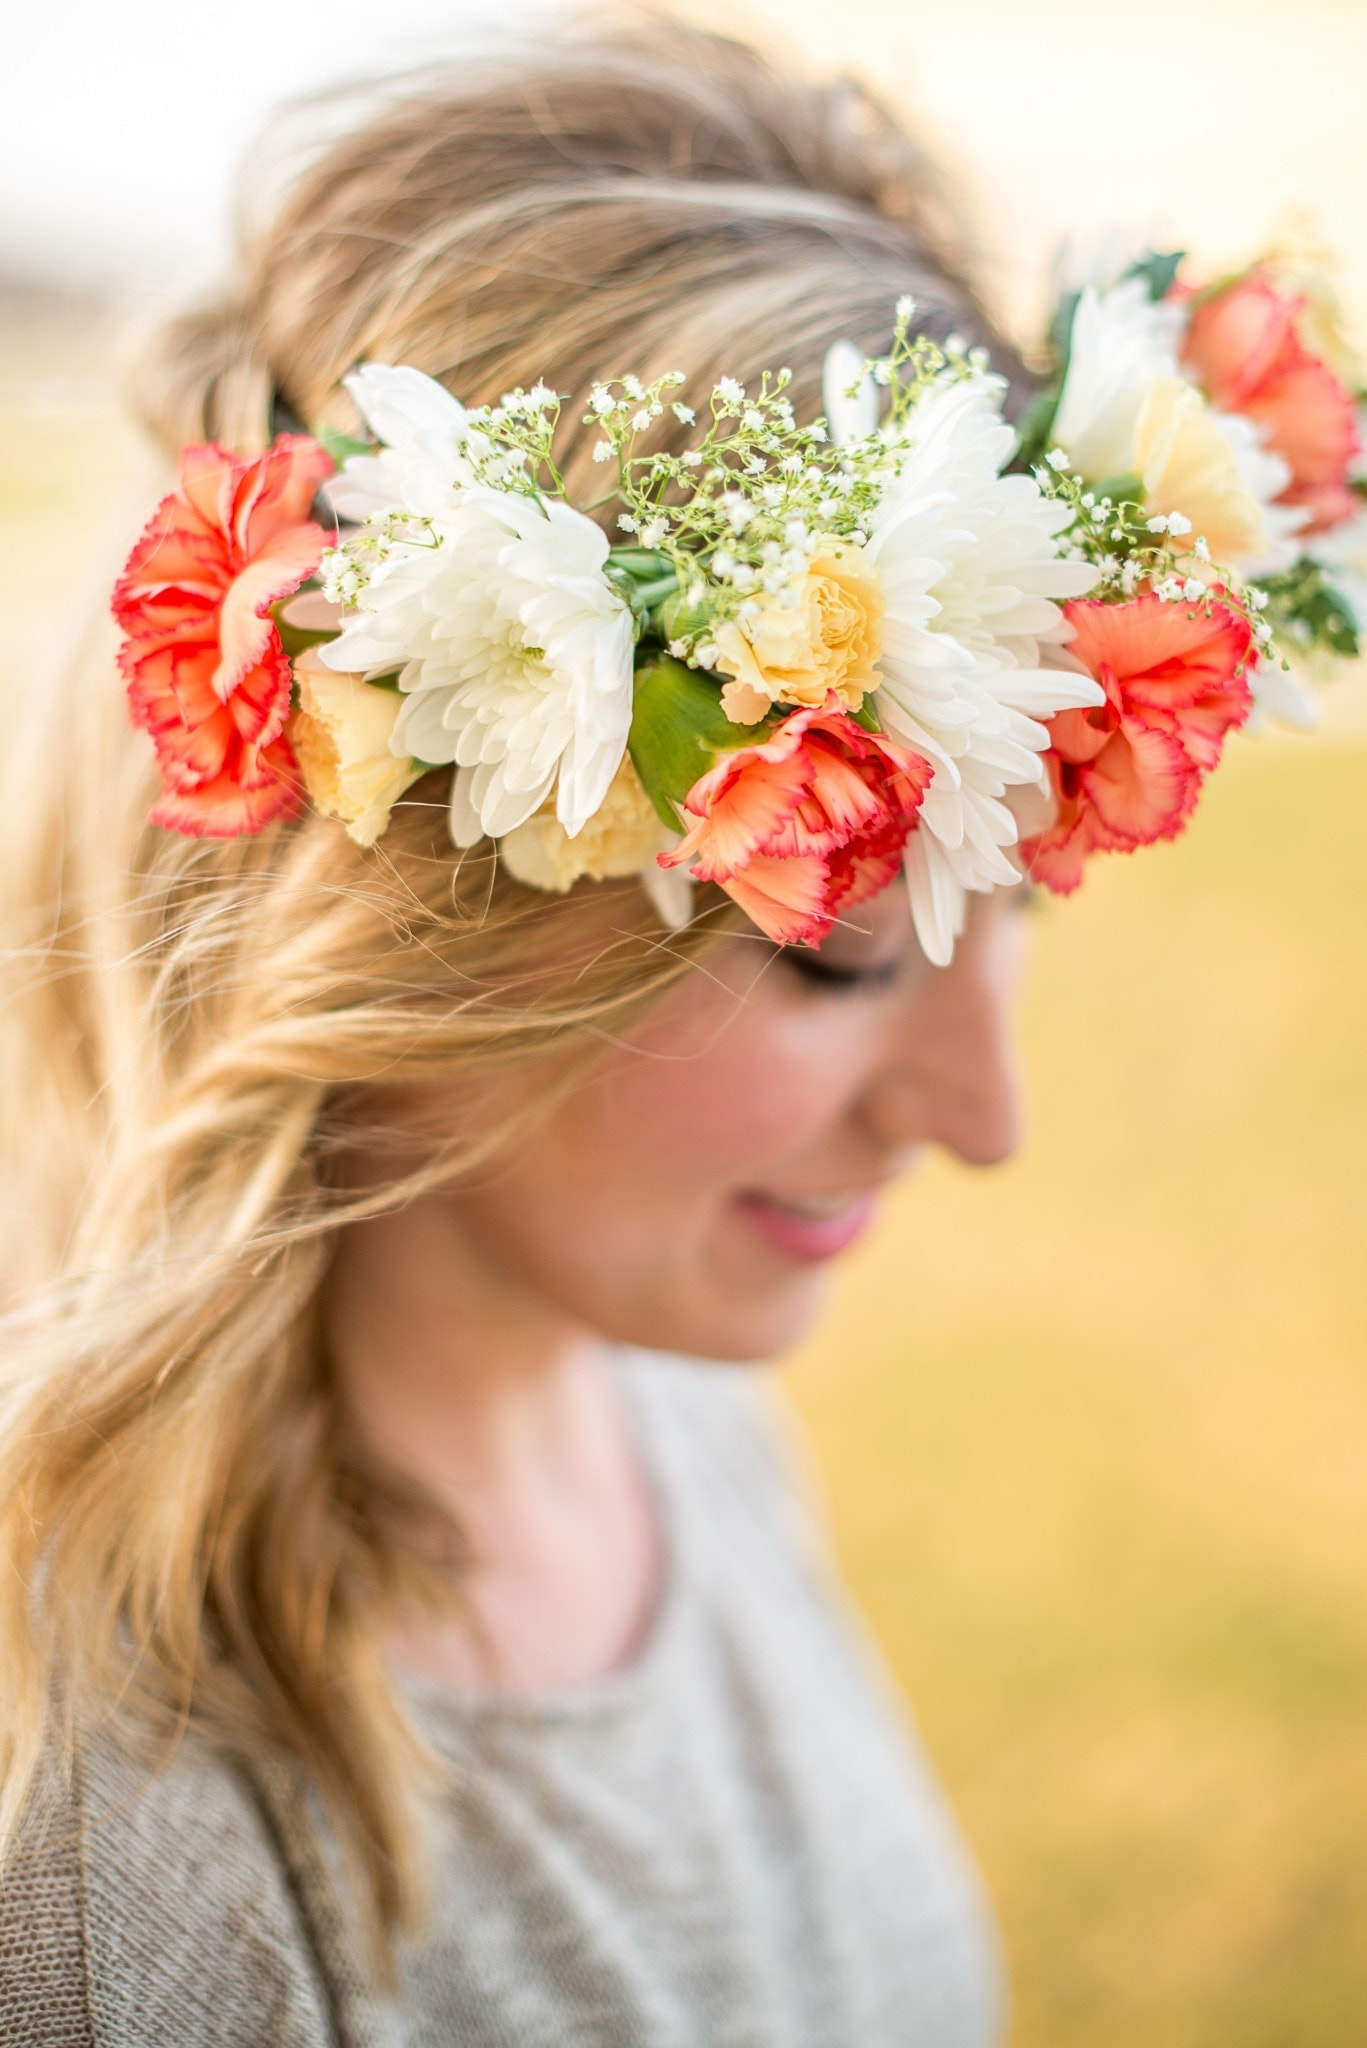 How to DIY a Spring-Worthy Floral Crown